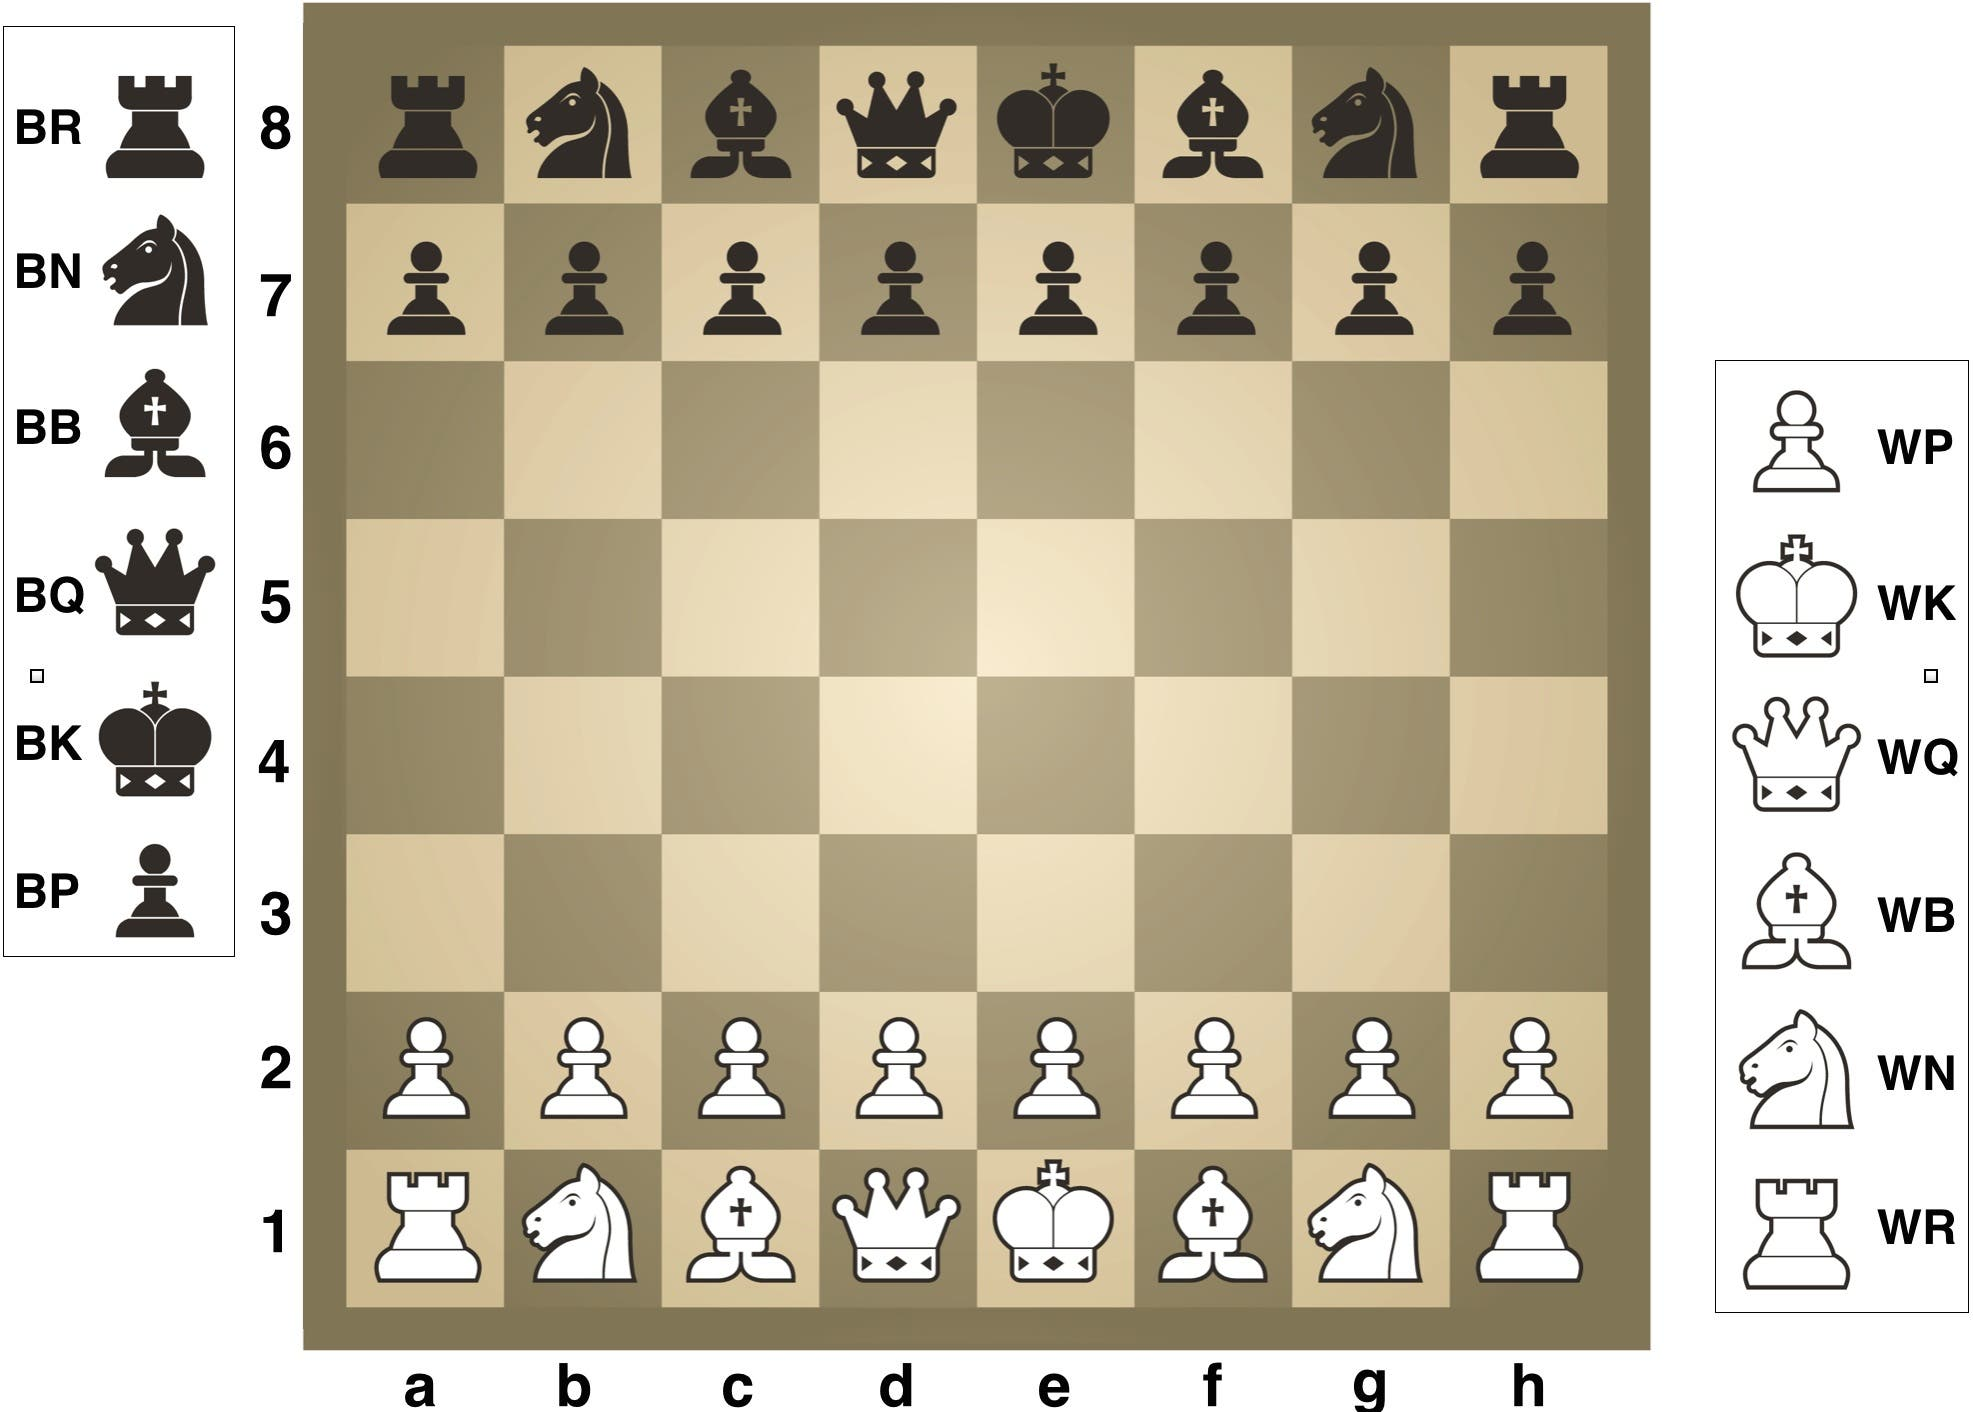 A chessboard with algebraic notation